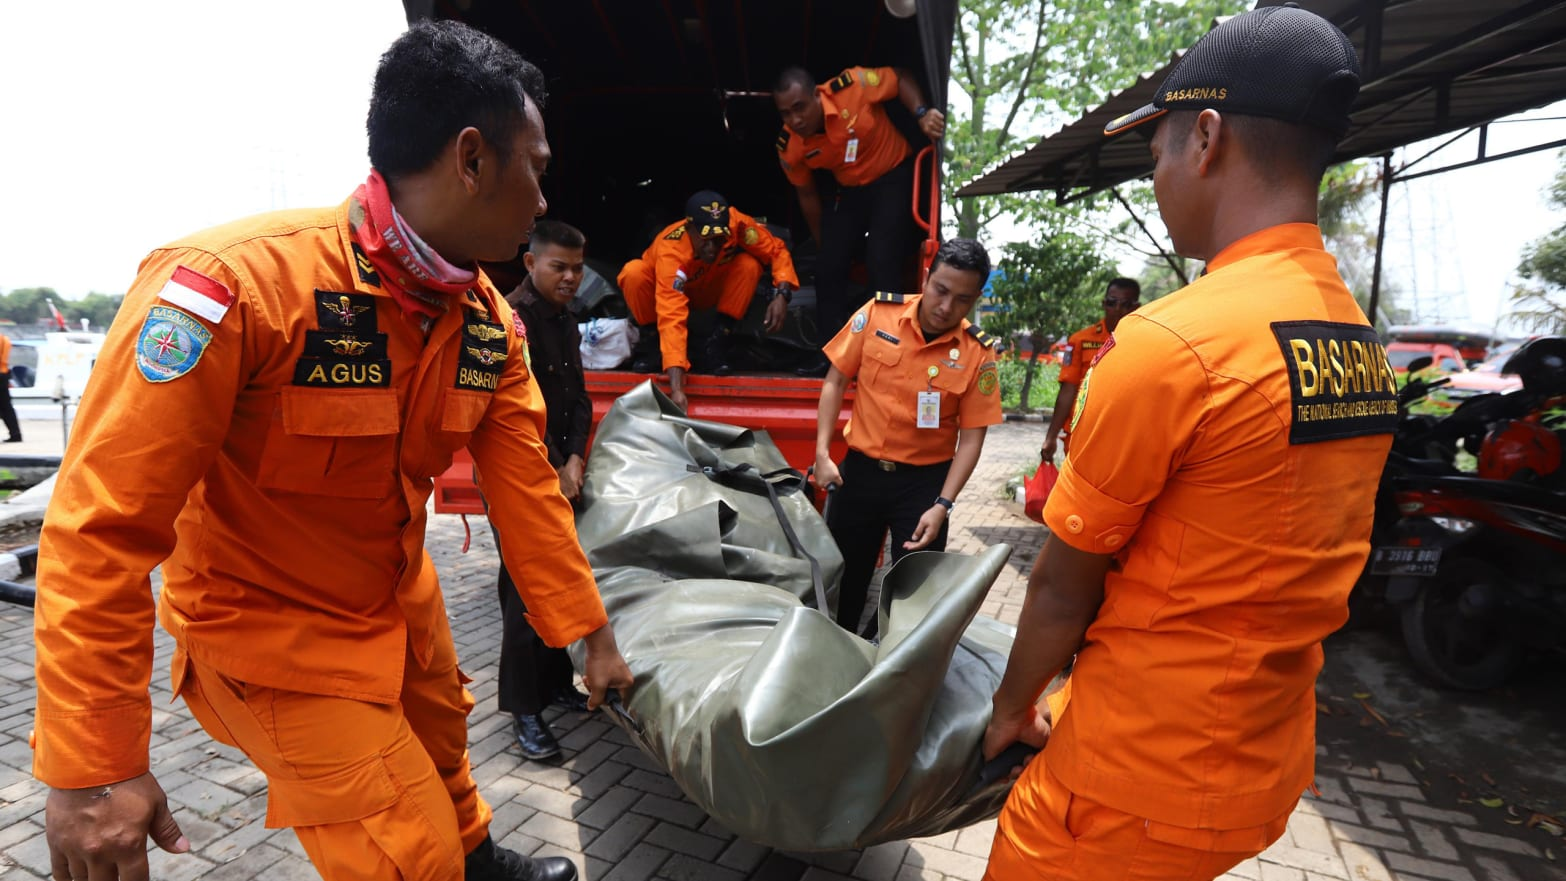 189 Missing in Lion Air Plane Crash That Should Never Have